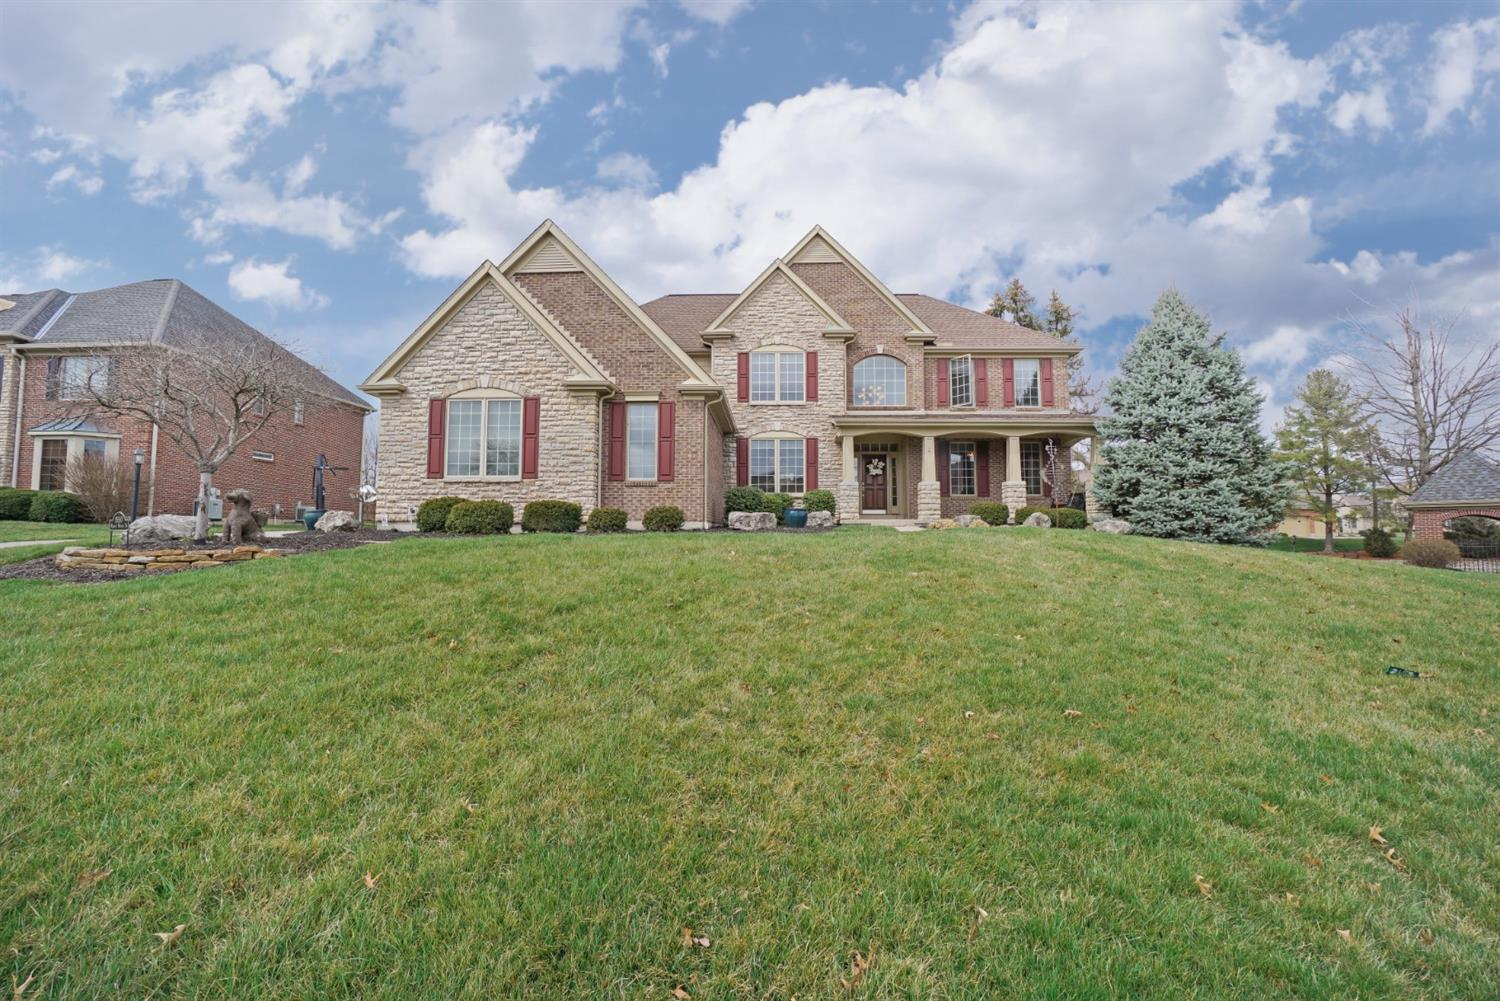 1550 Mashie Woods Dr Miami Twp OH